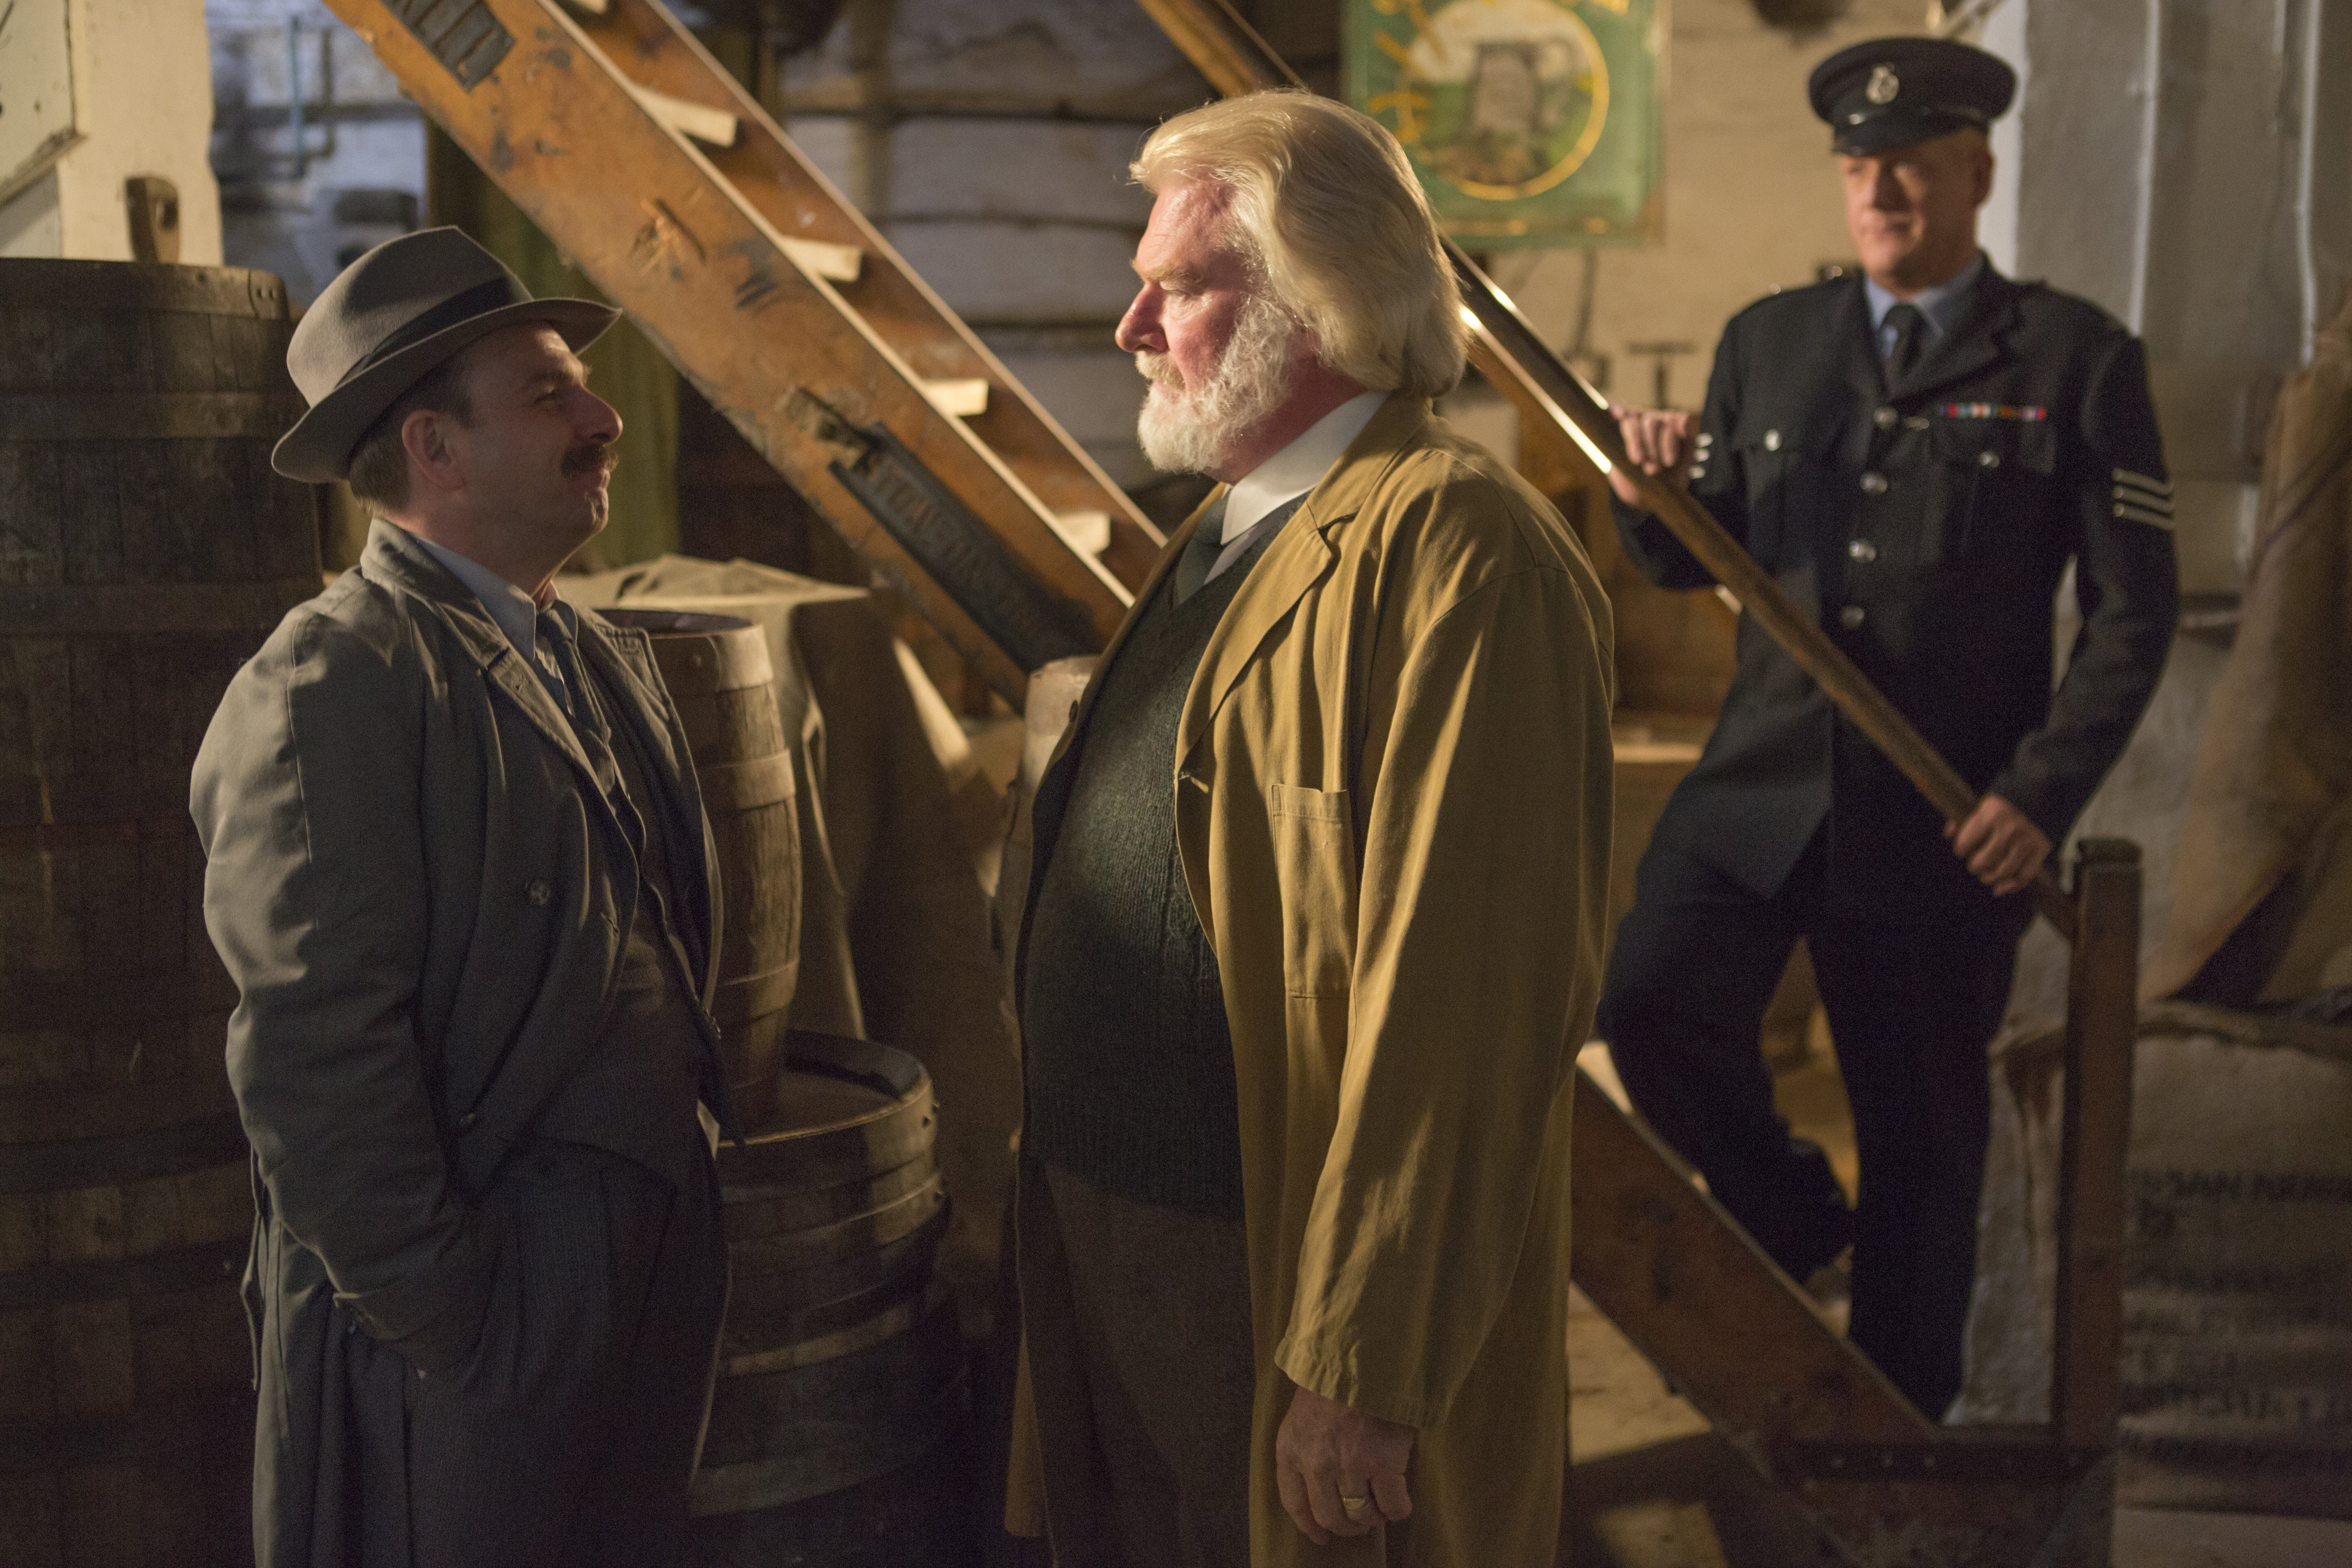 Father Brown: The Brewer's Daughter | Season 4 | Episode 2